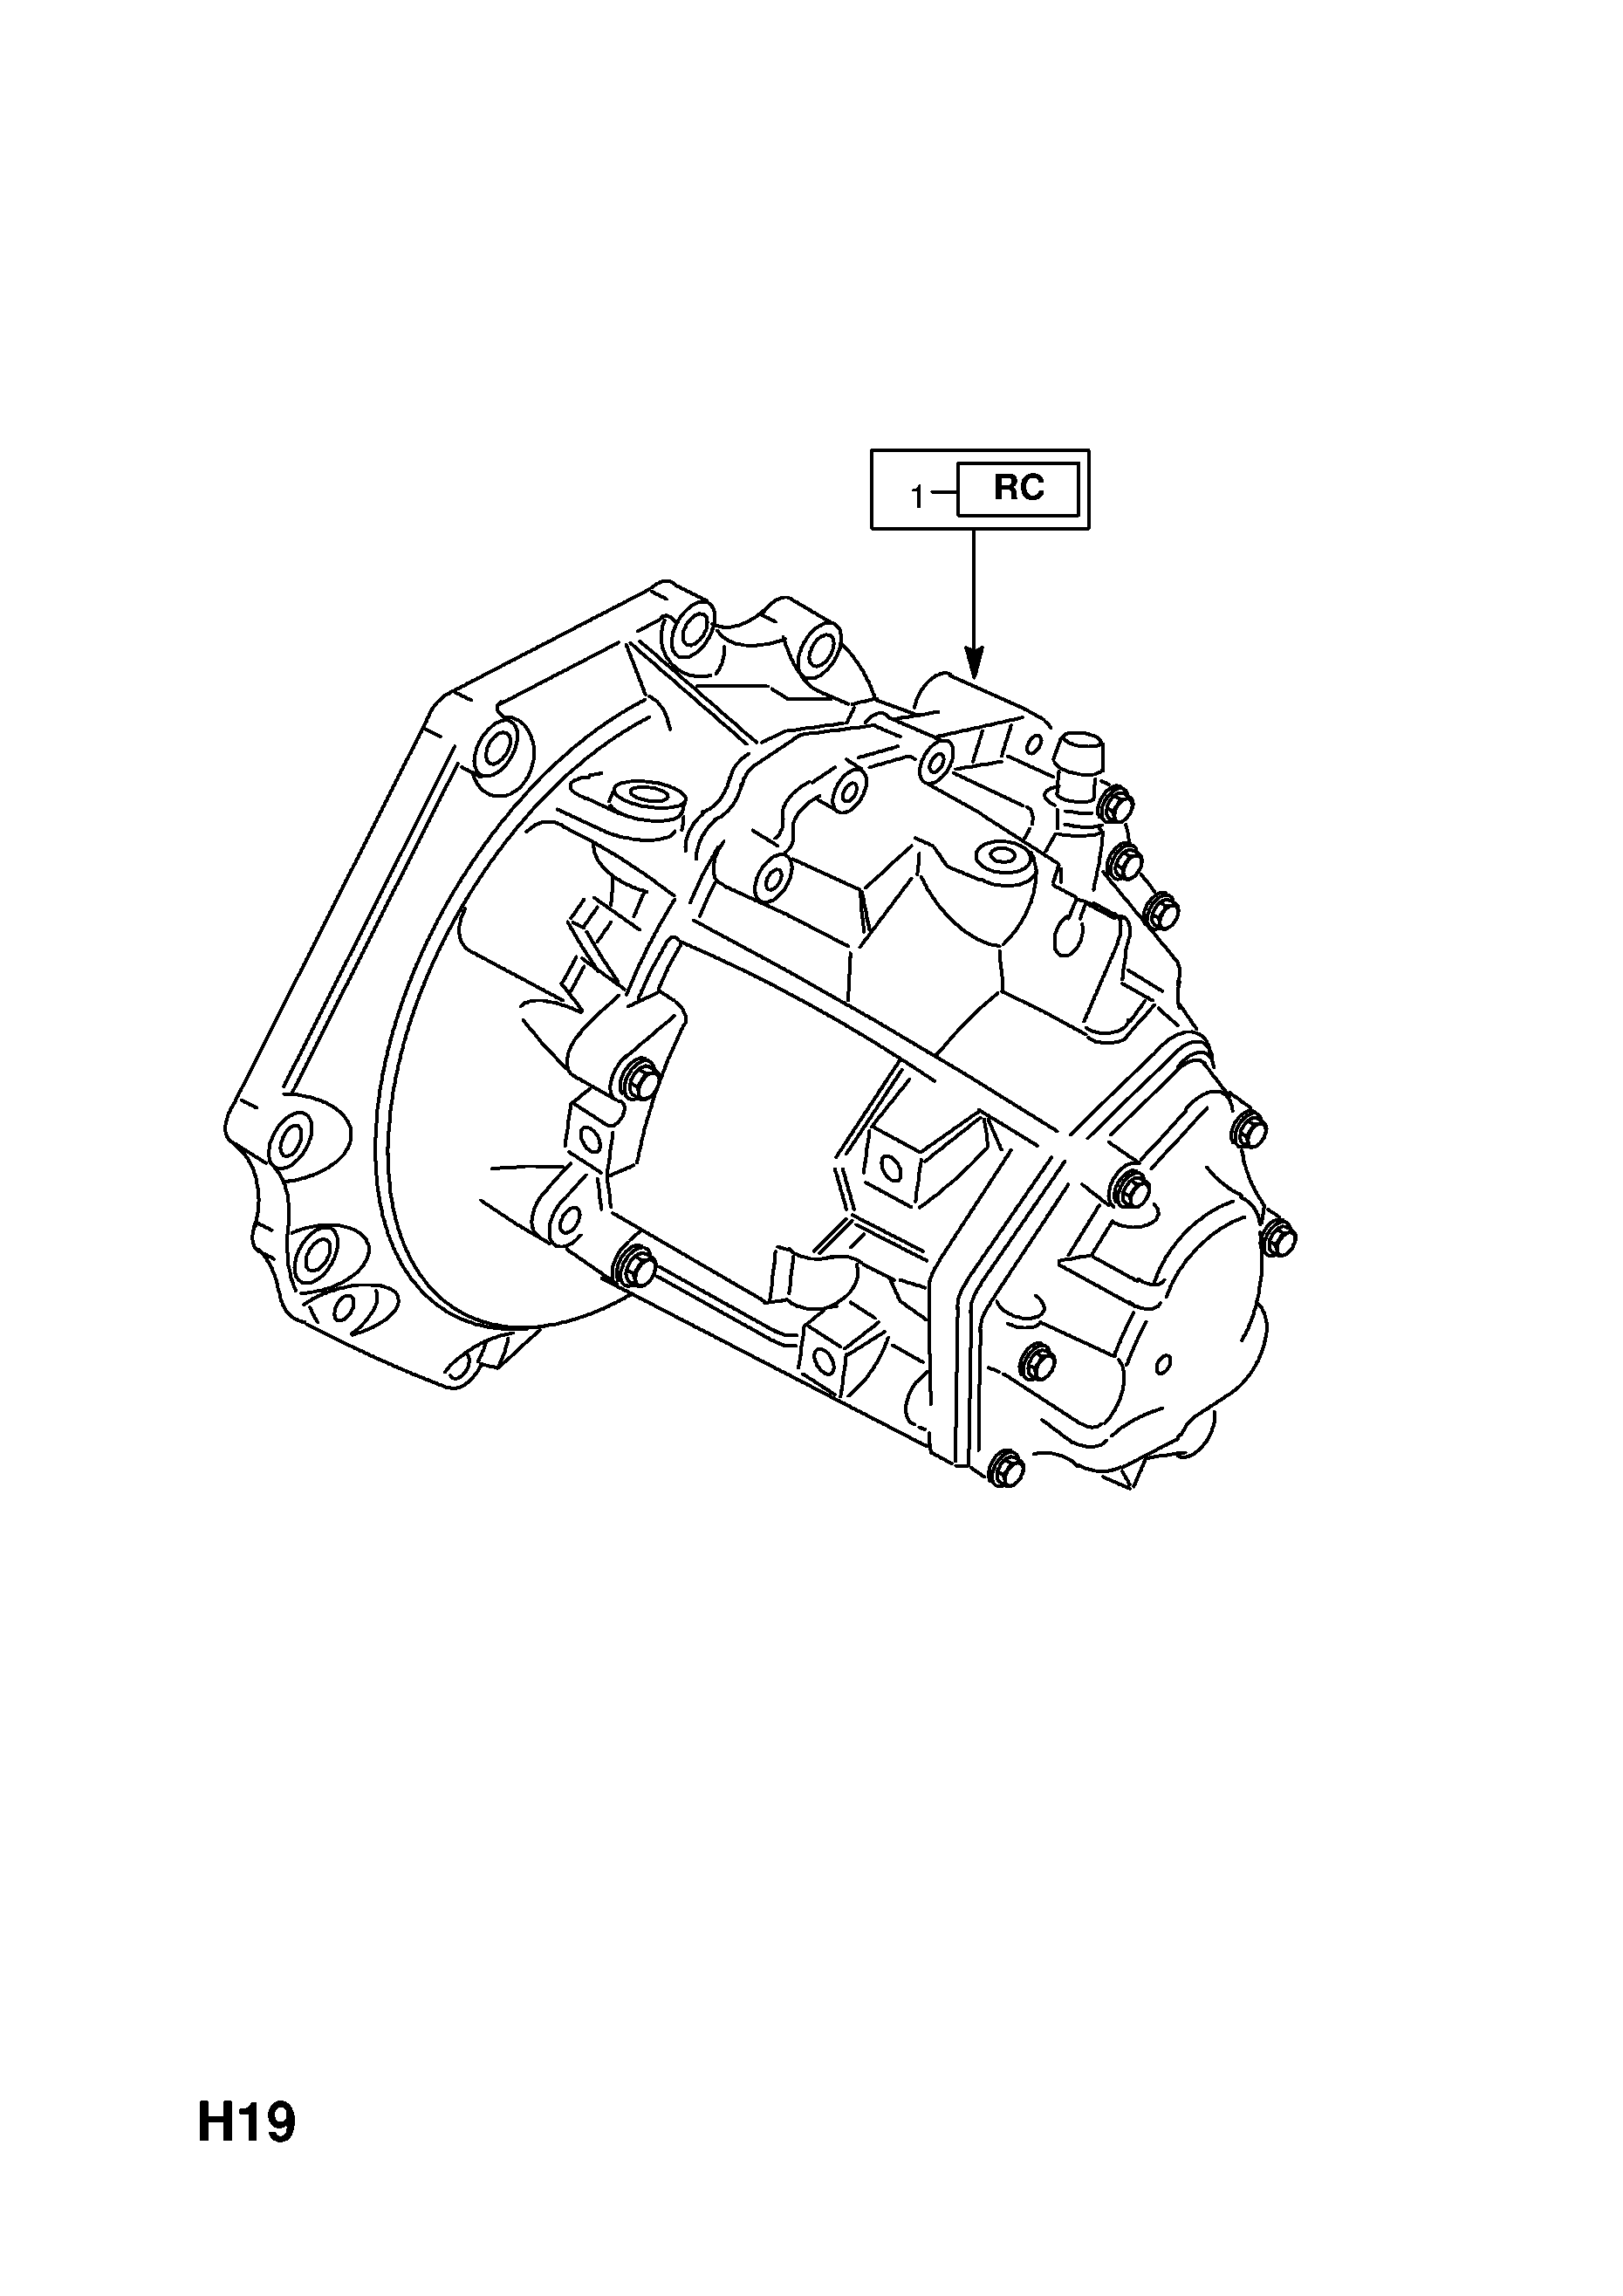 Transmission Assembly Exchange For Vauxhall Opel Vectra B Diagrams